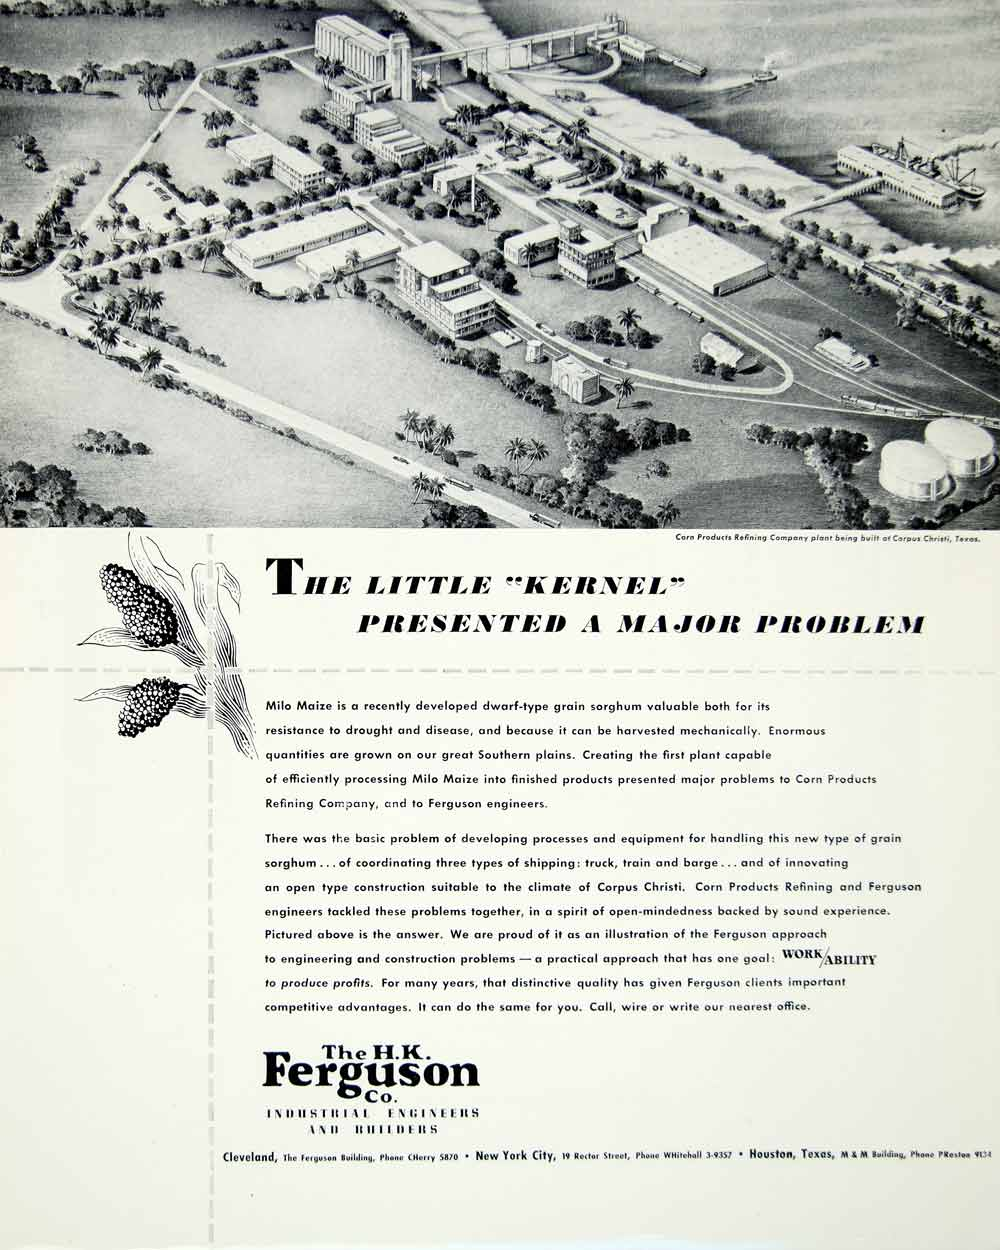 1947 Ad H. K. Ferguson Company Industrial Engineer Builder Corn Product YFT3